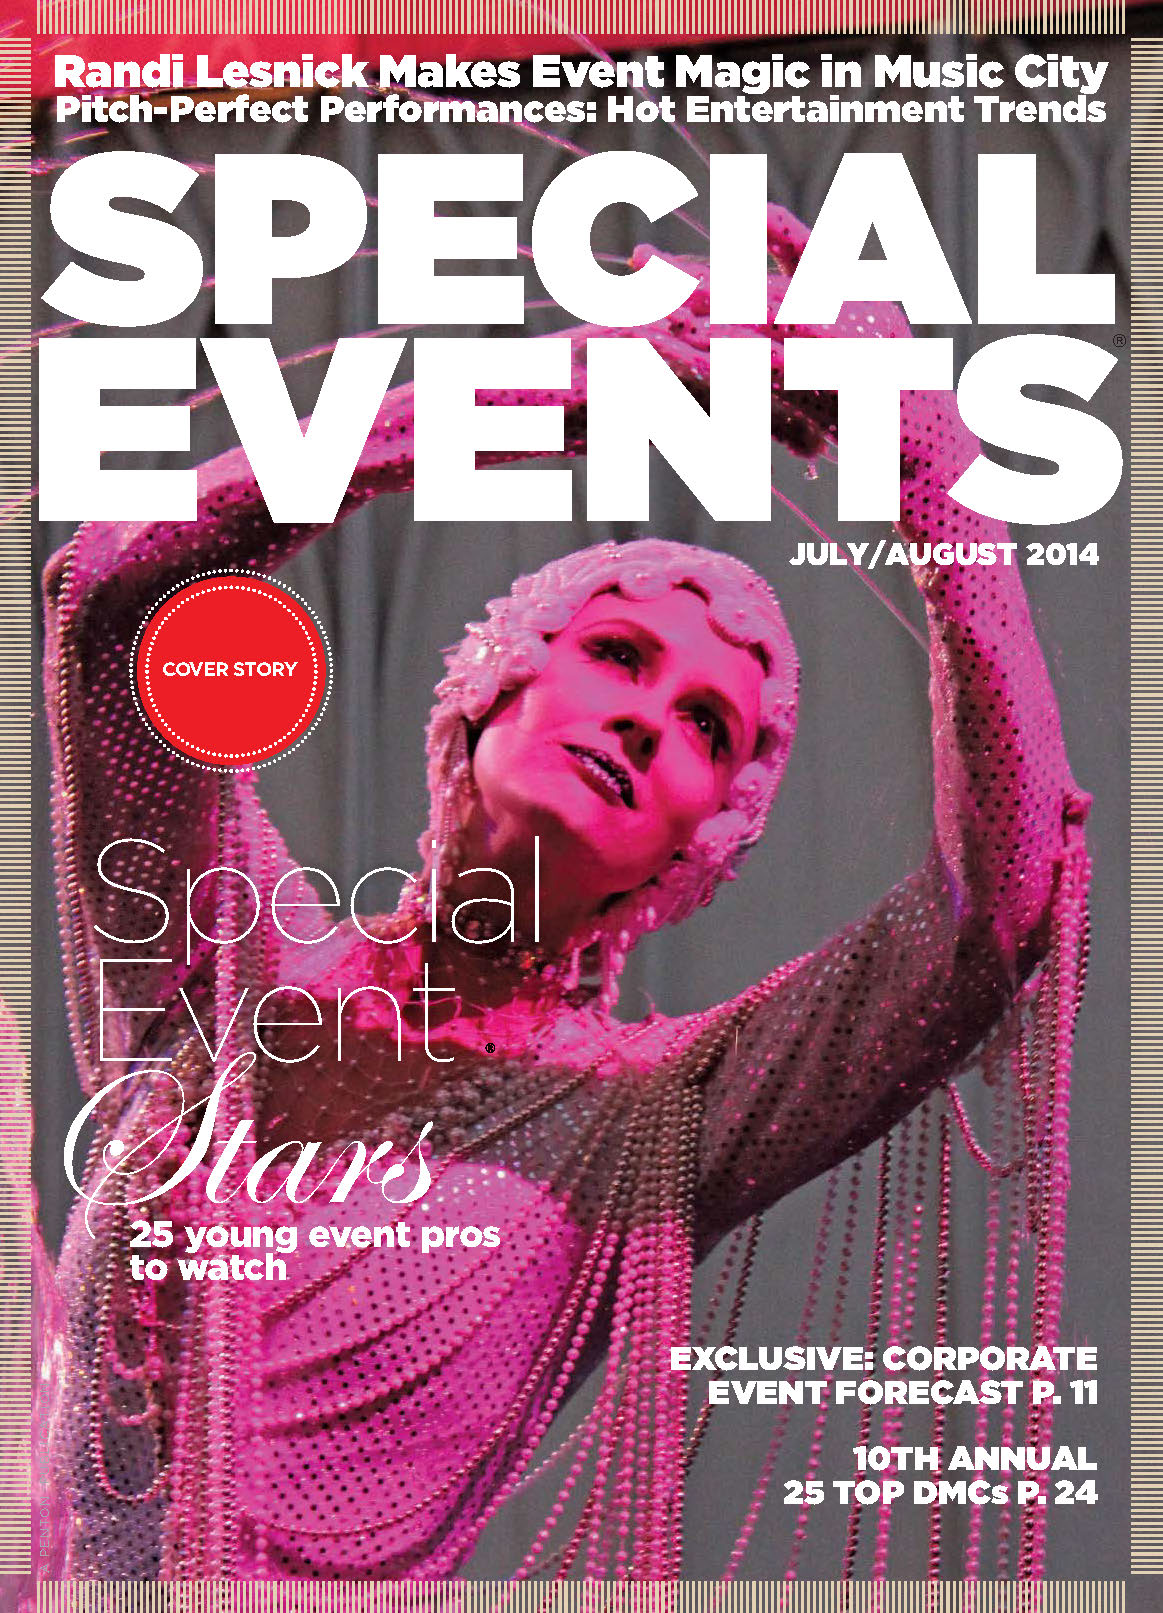 Kat Kat Creech Named Top 25 Event Professionals by Special Events